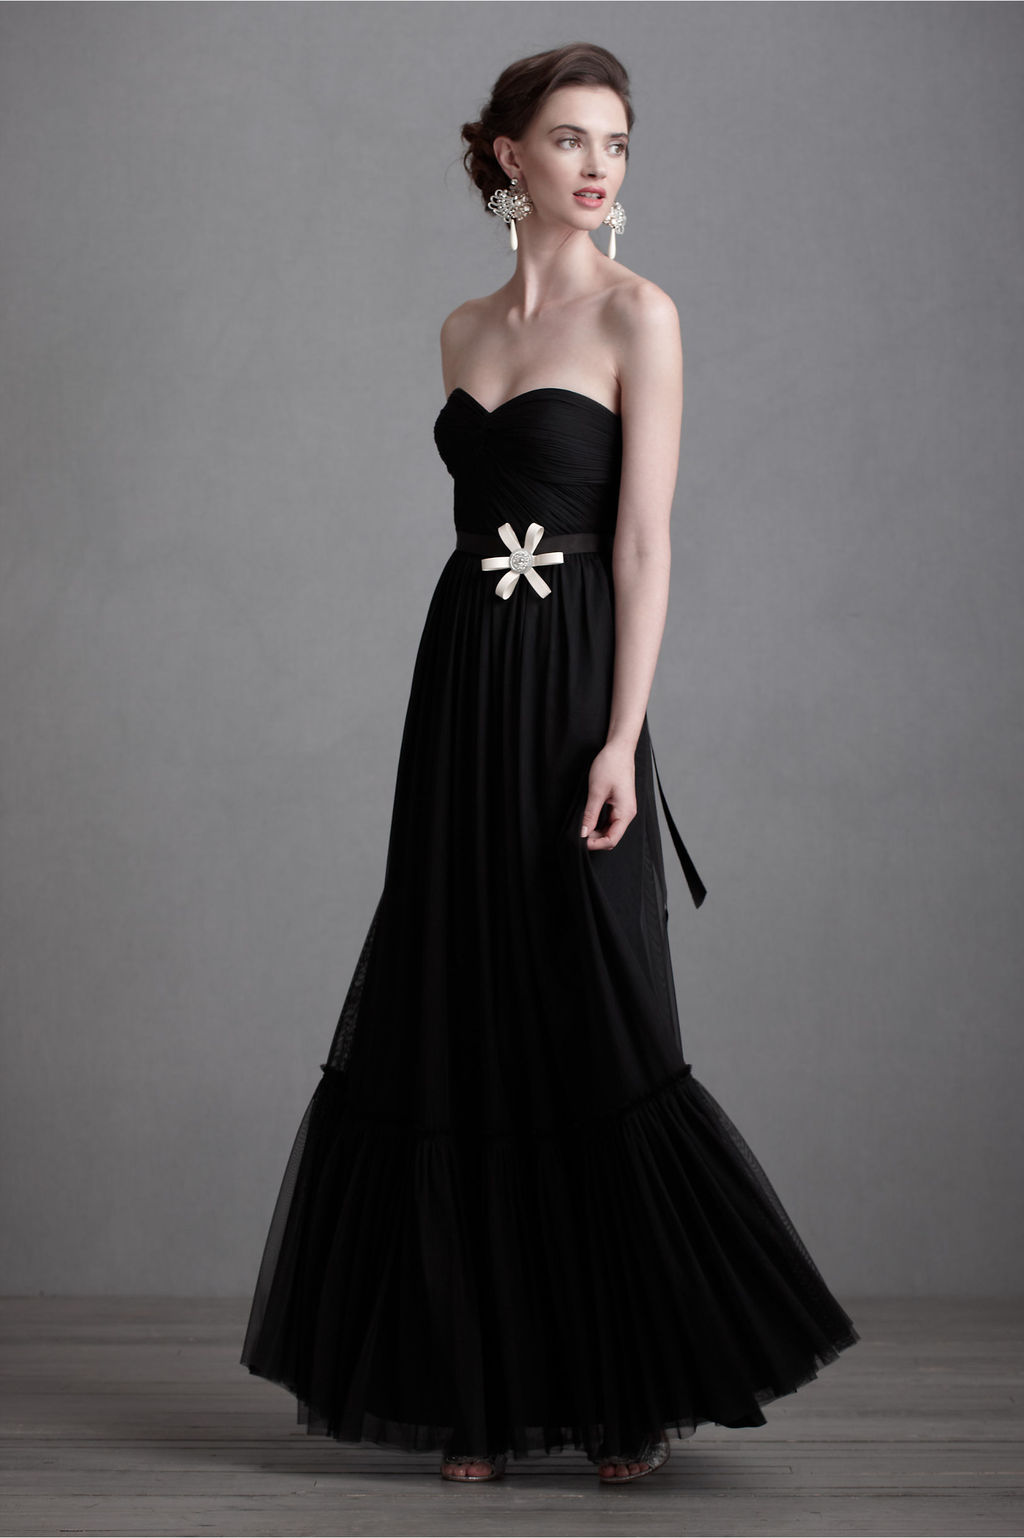 Black-bridesmaid-dresses-for-downtown-chic-weddings-bhldn.full